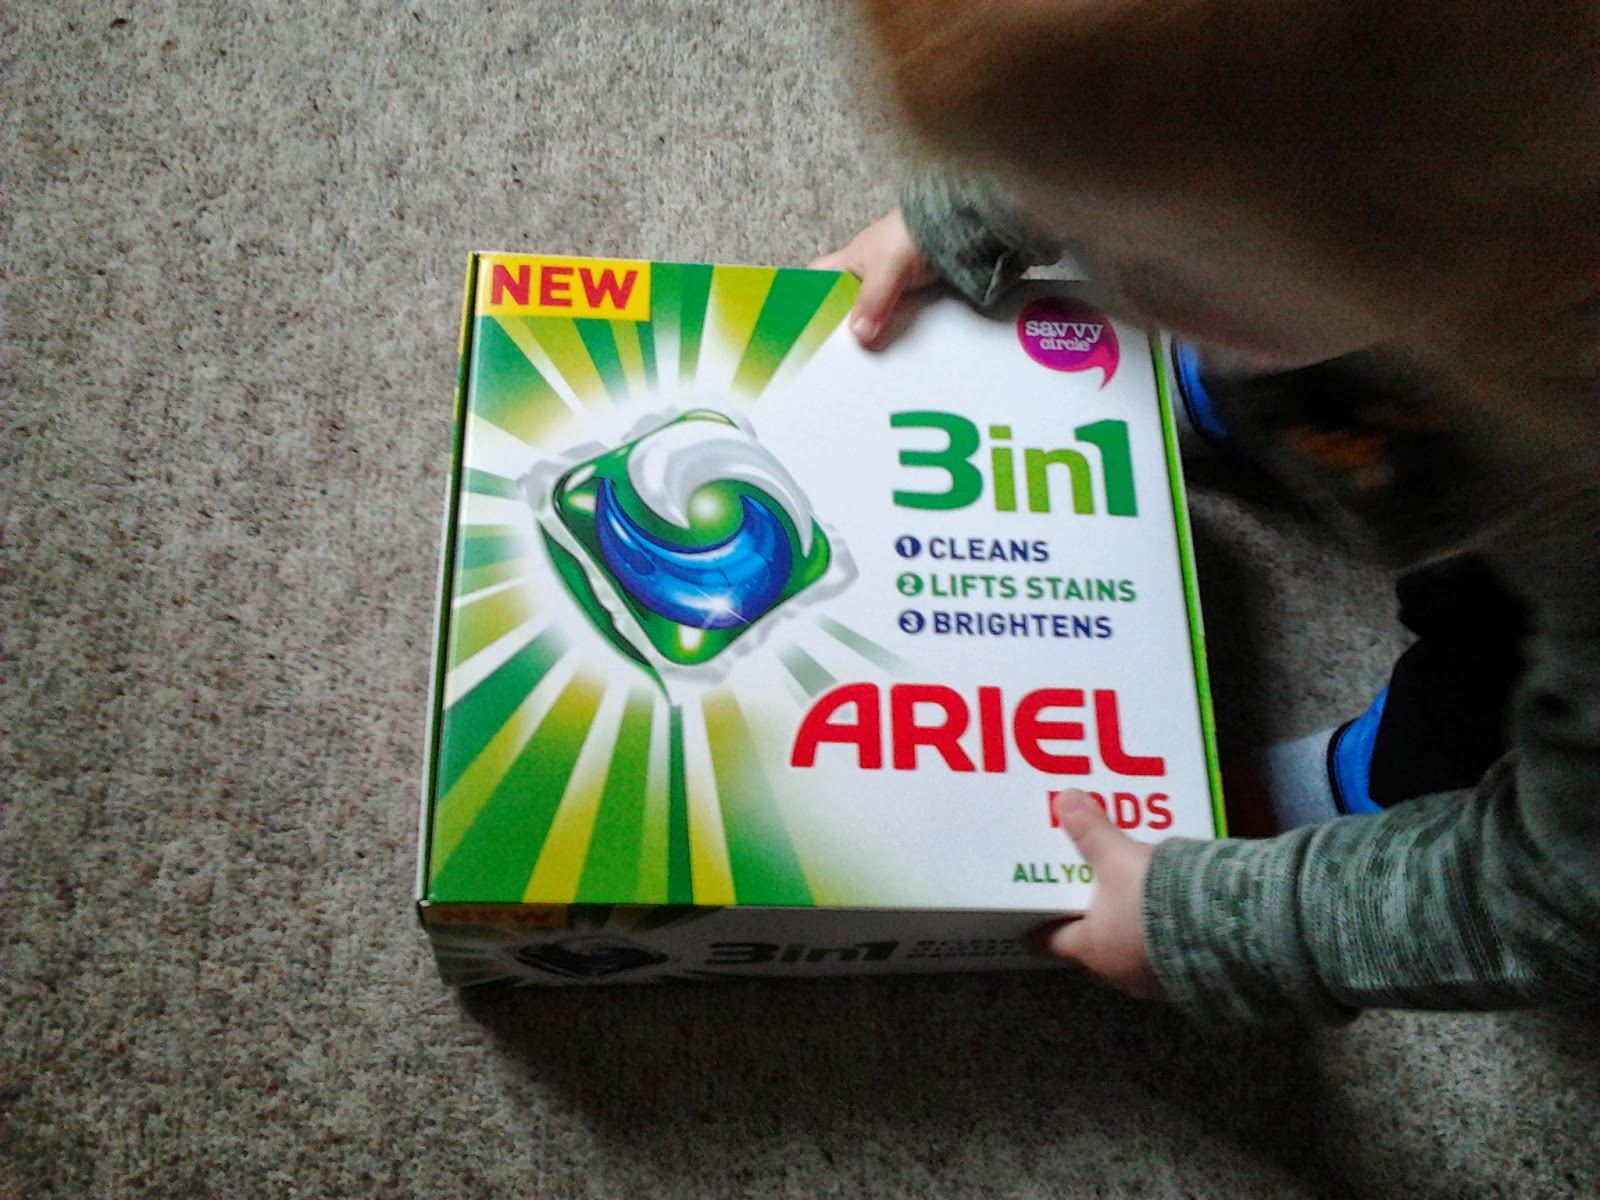 Hijacked By Twins: Ariel 3in1 Pods - Review